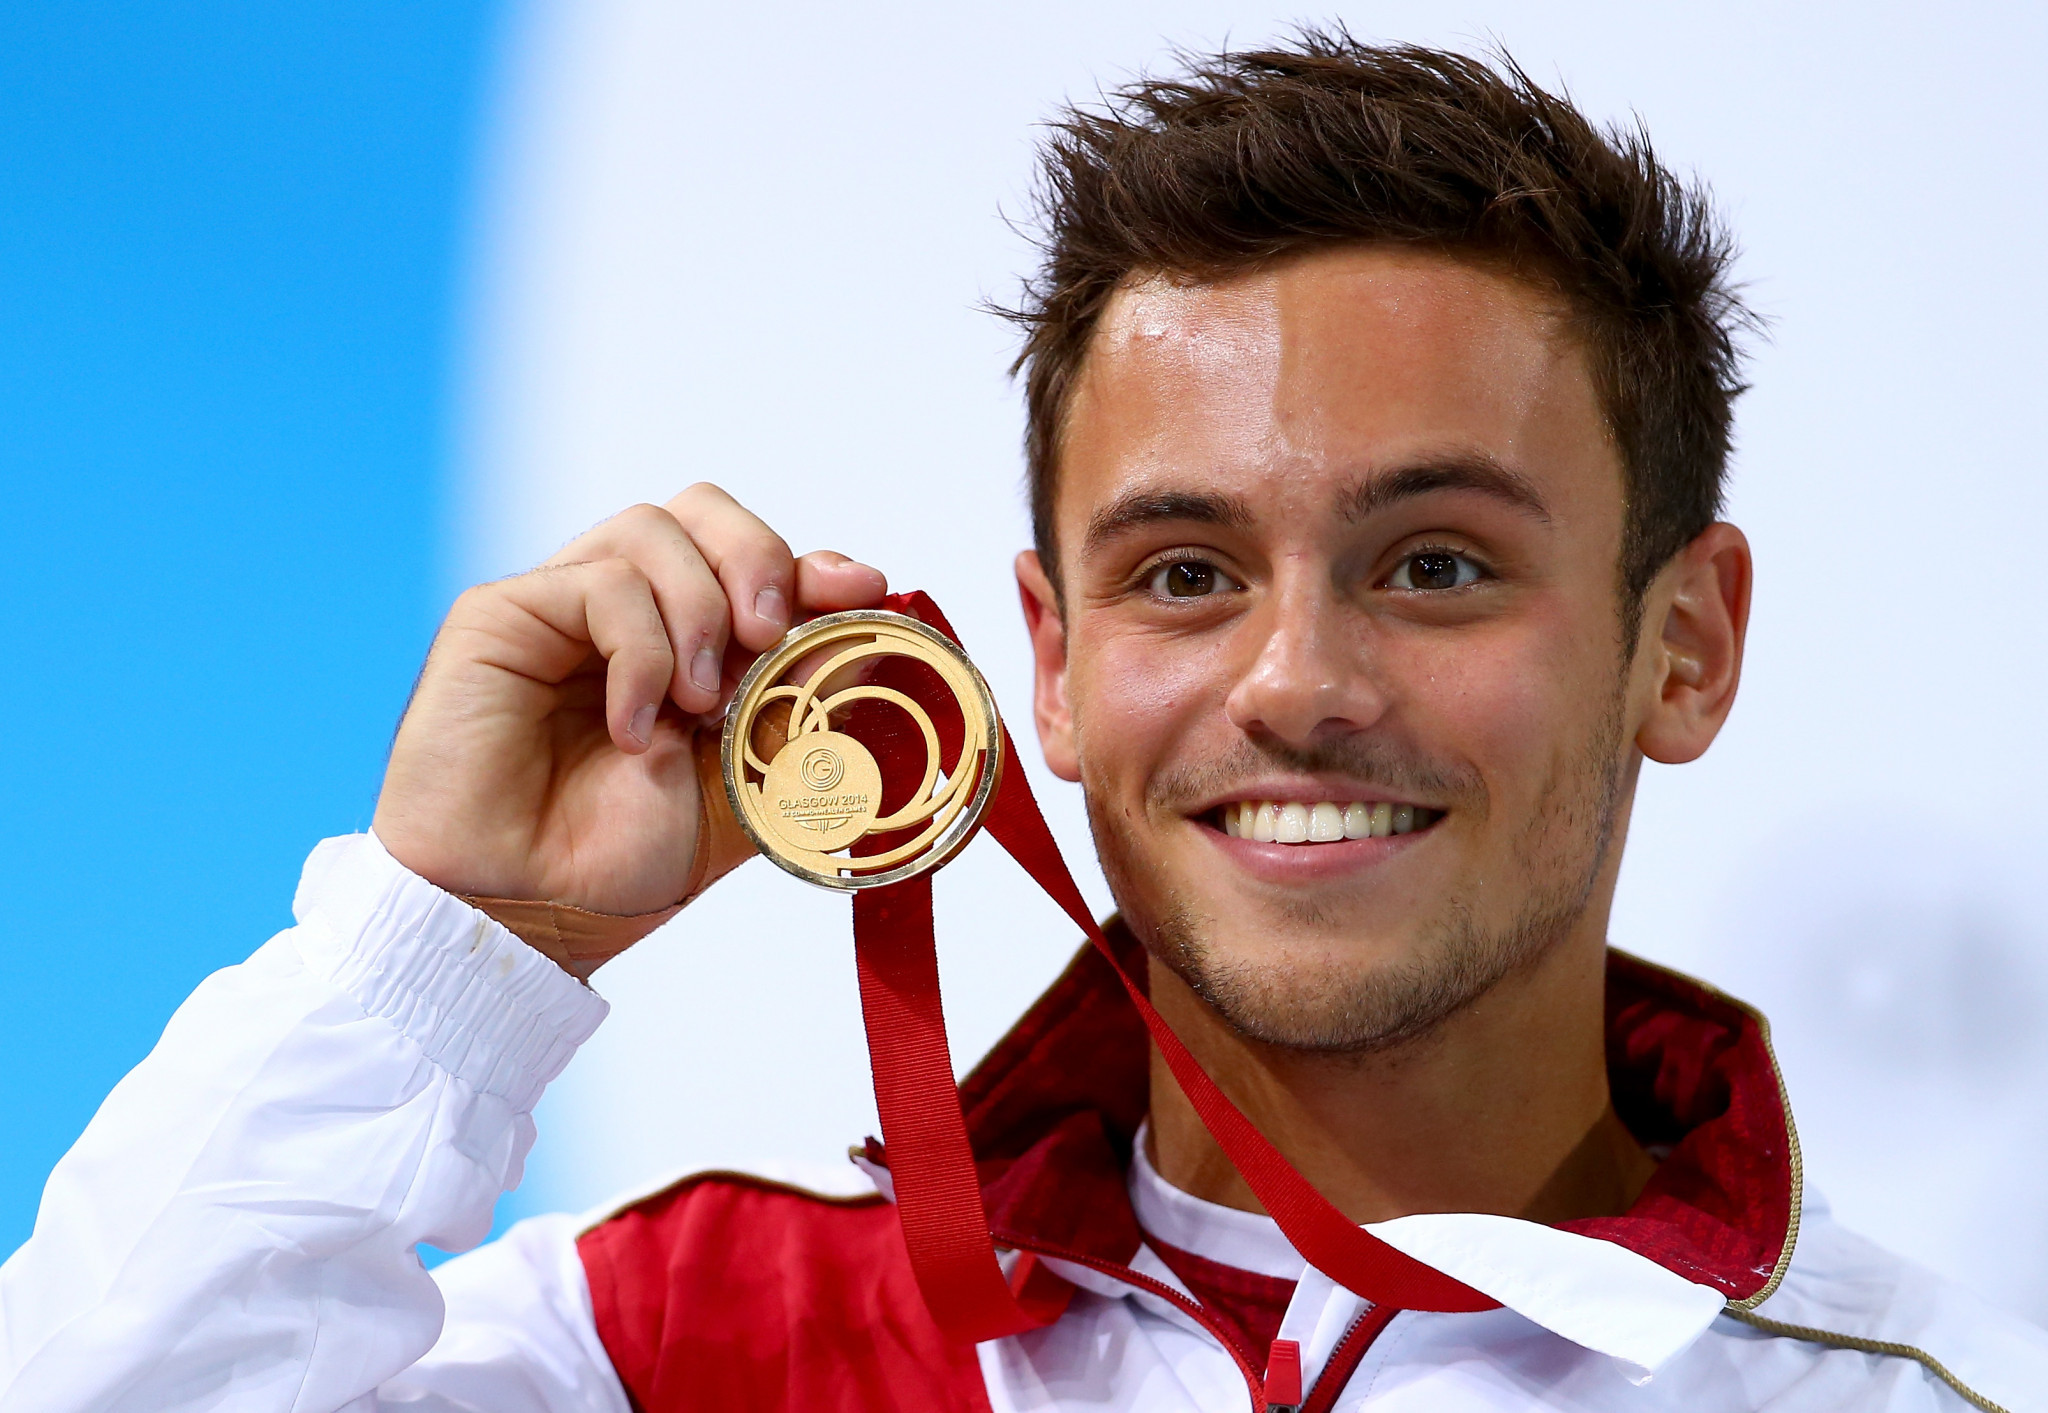 Daley chosen for third Commonwealth Games as England diving squad for Gold Coast 2018